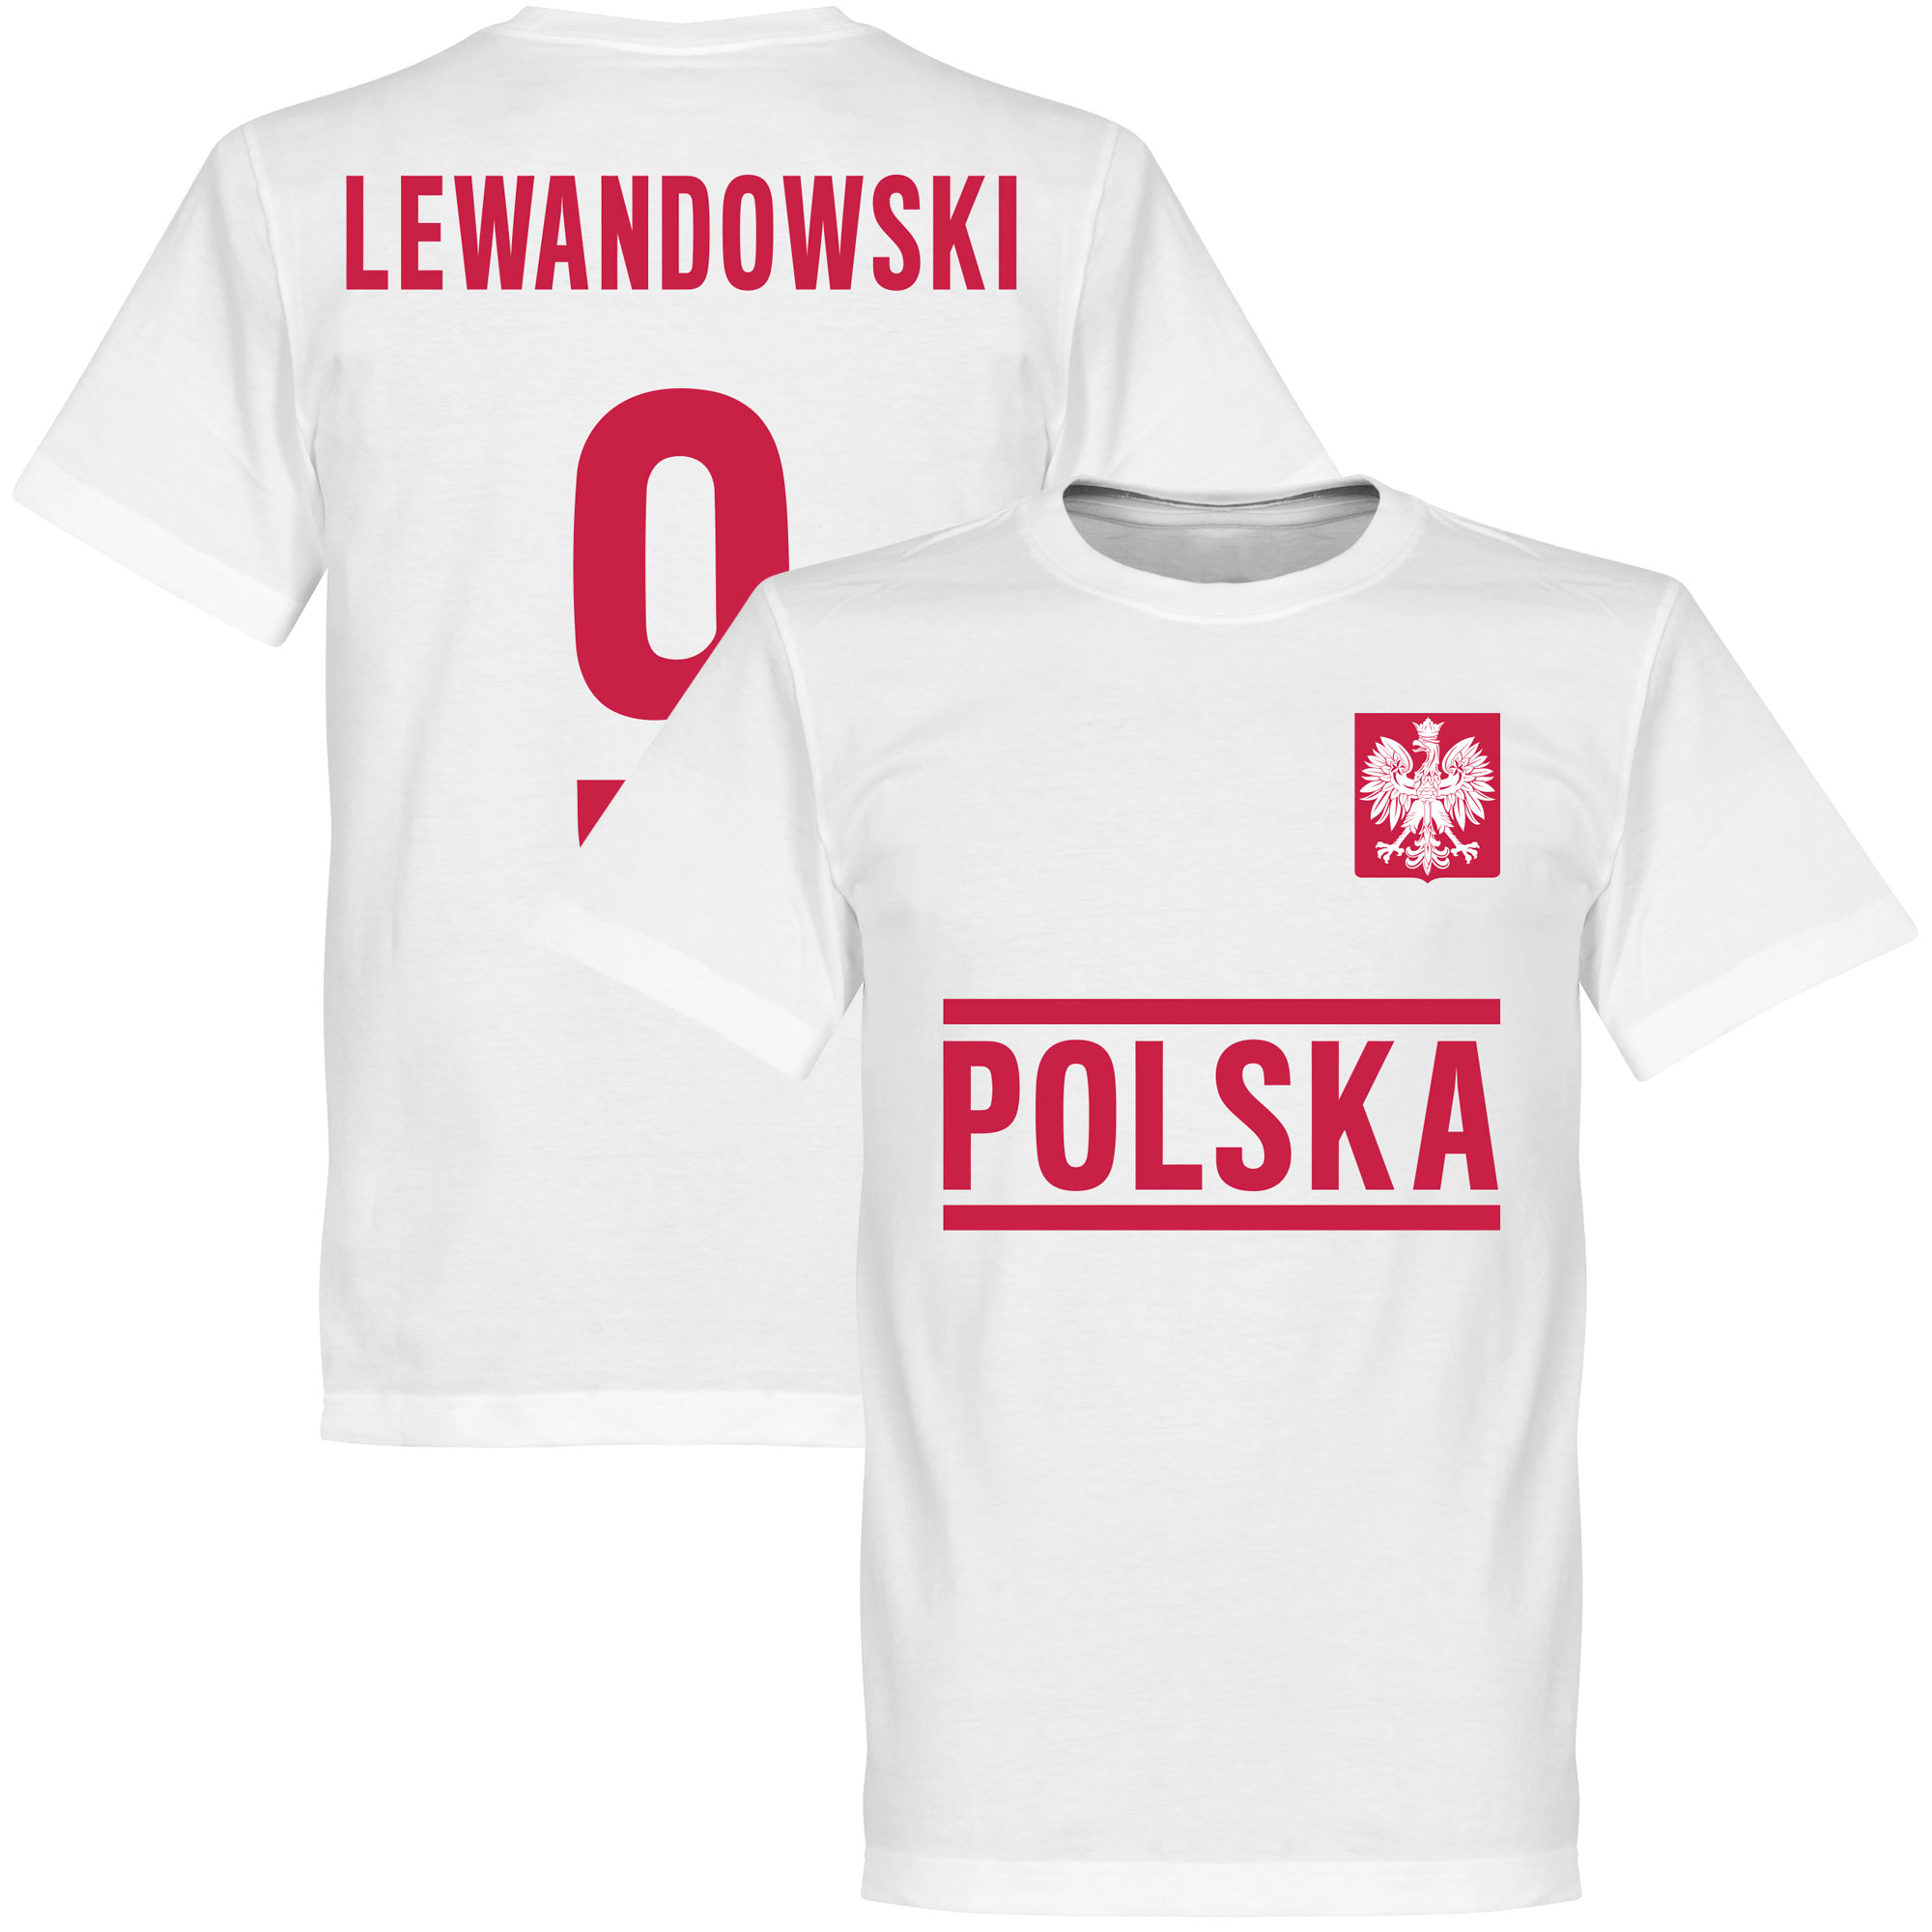 Poland Lewandowski Team Tee - White - L